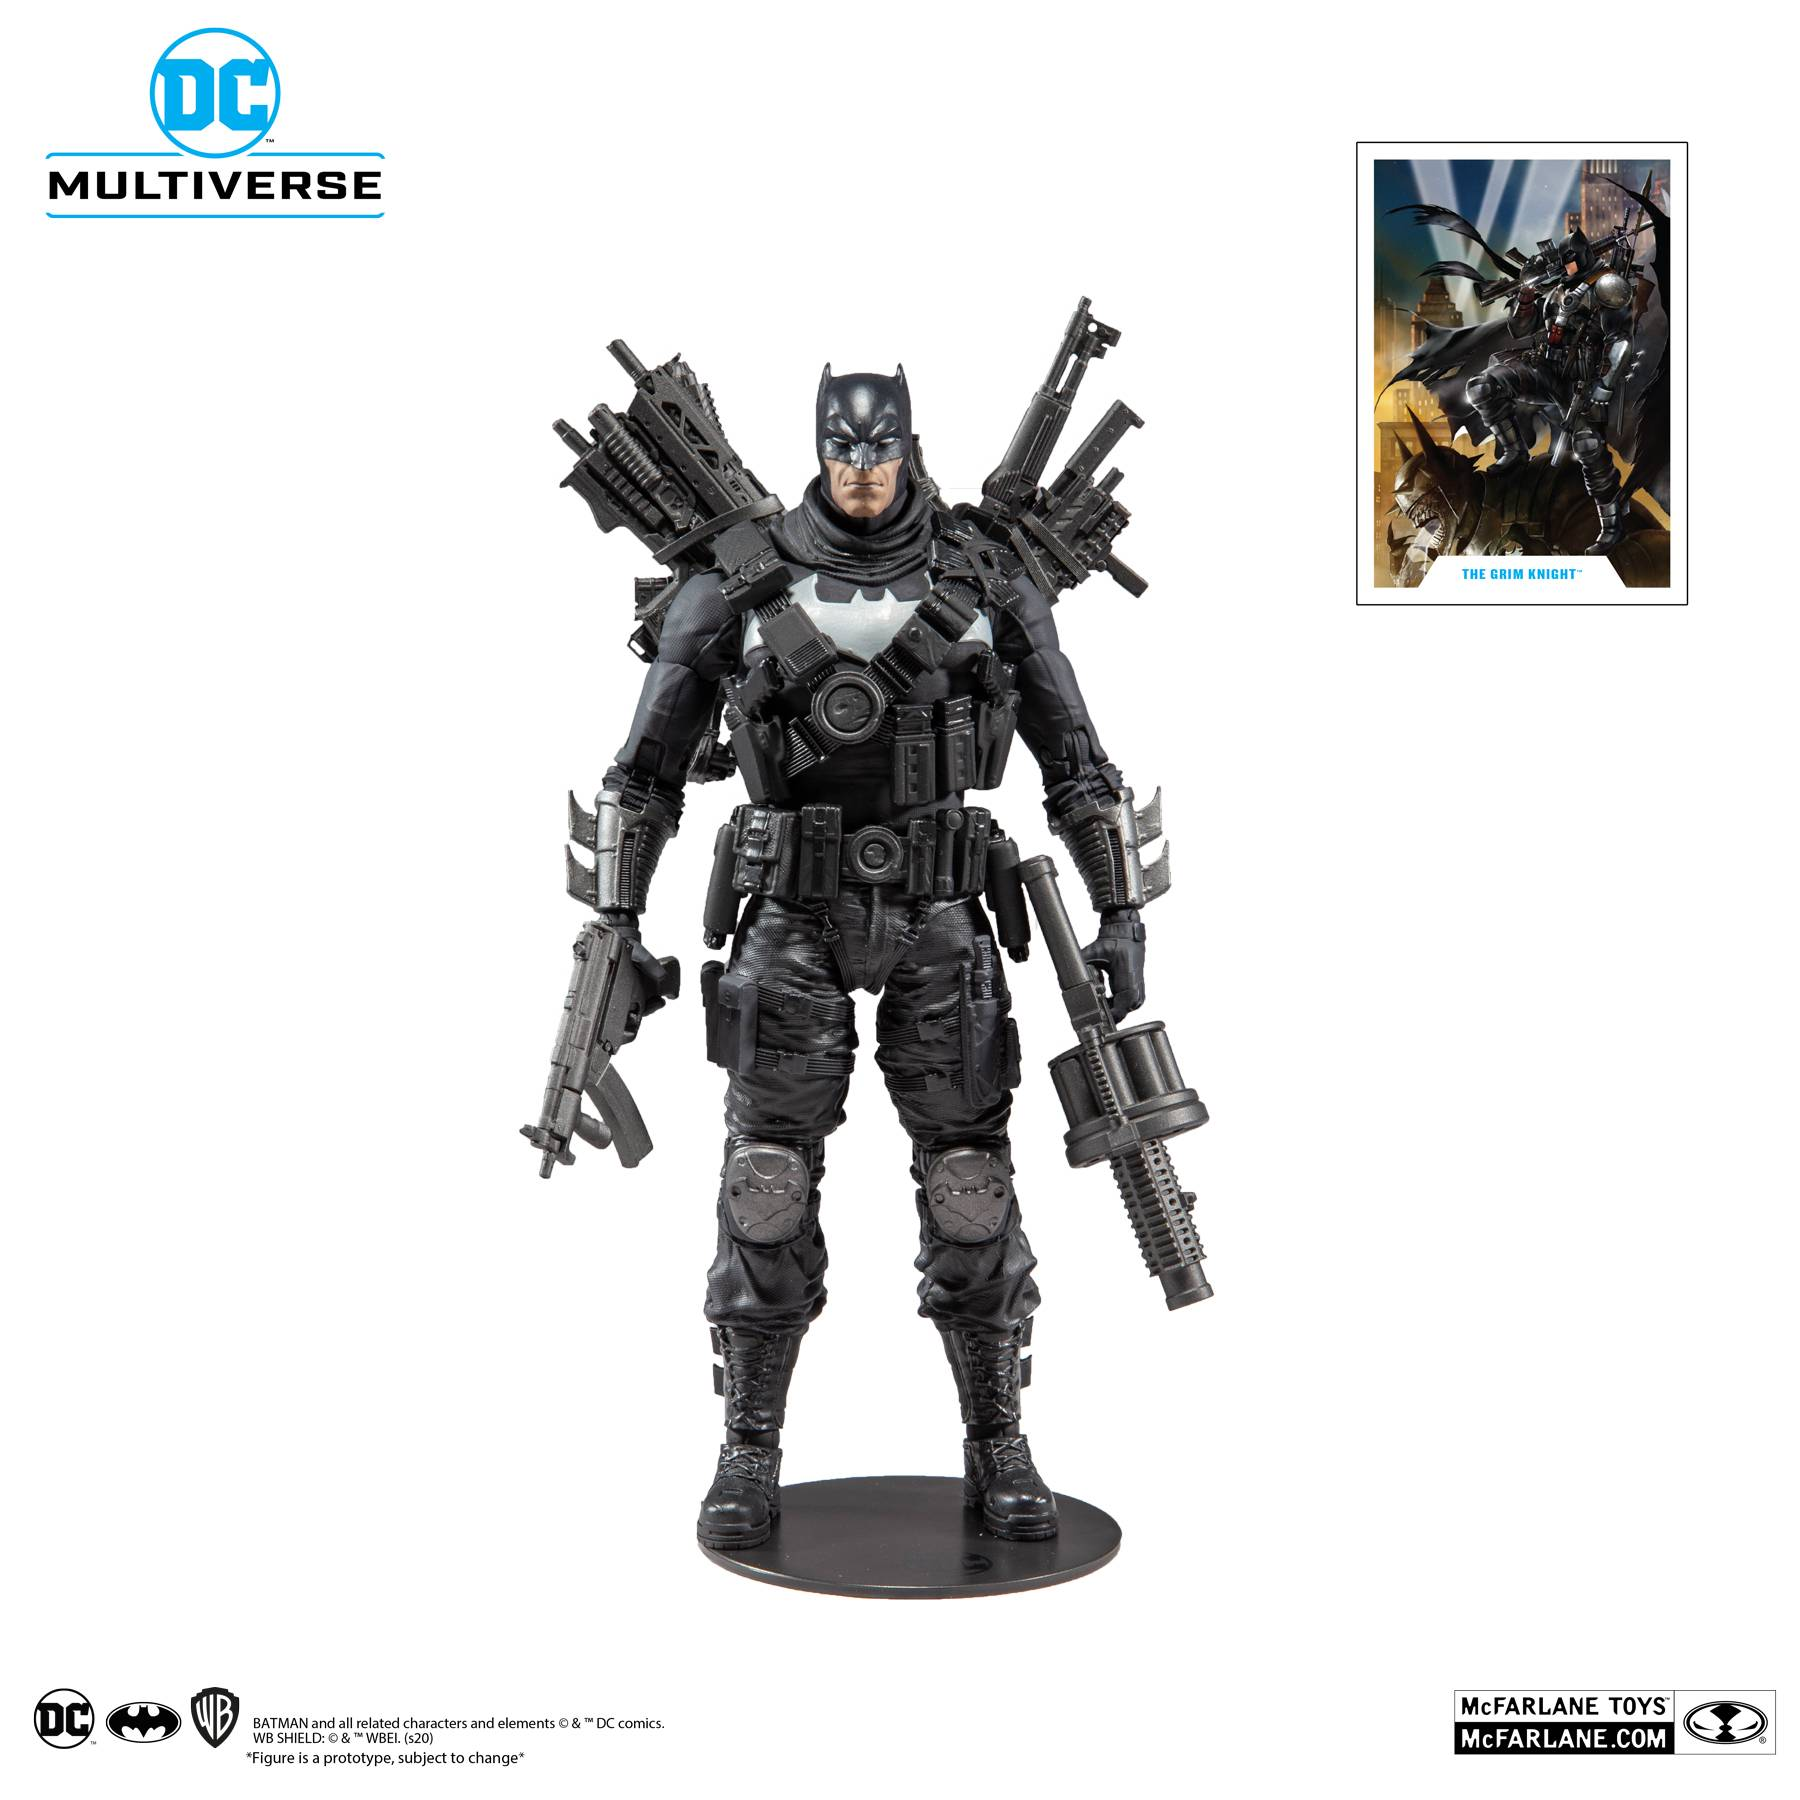 THE GRIM KNIGHT - DC MULTIVERSE McFarlane Toys 7-Inch Action Figure